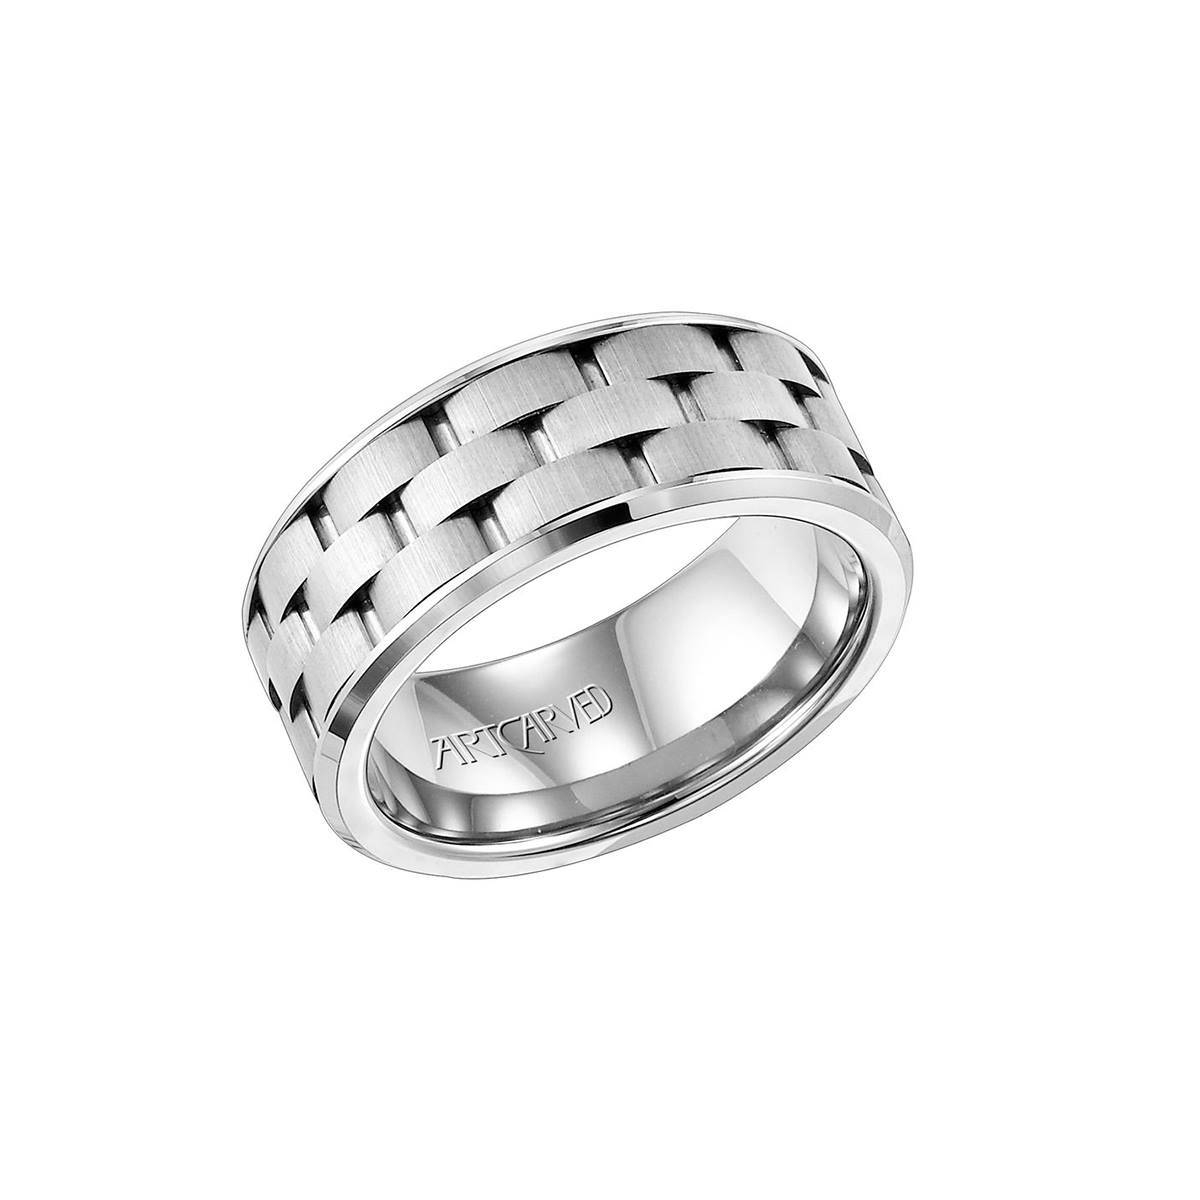 Artcarved – Men 's Wedding Bands Pertaining To Artcarved Men Wedding Bands (View 6 of 15)